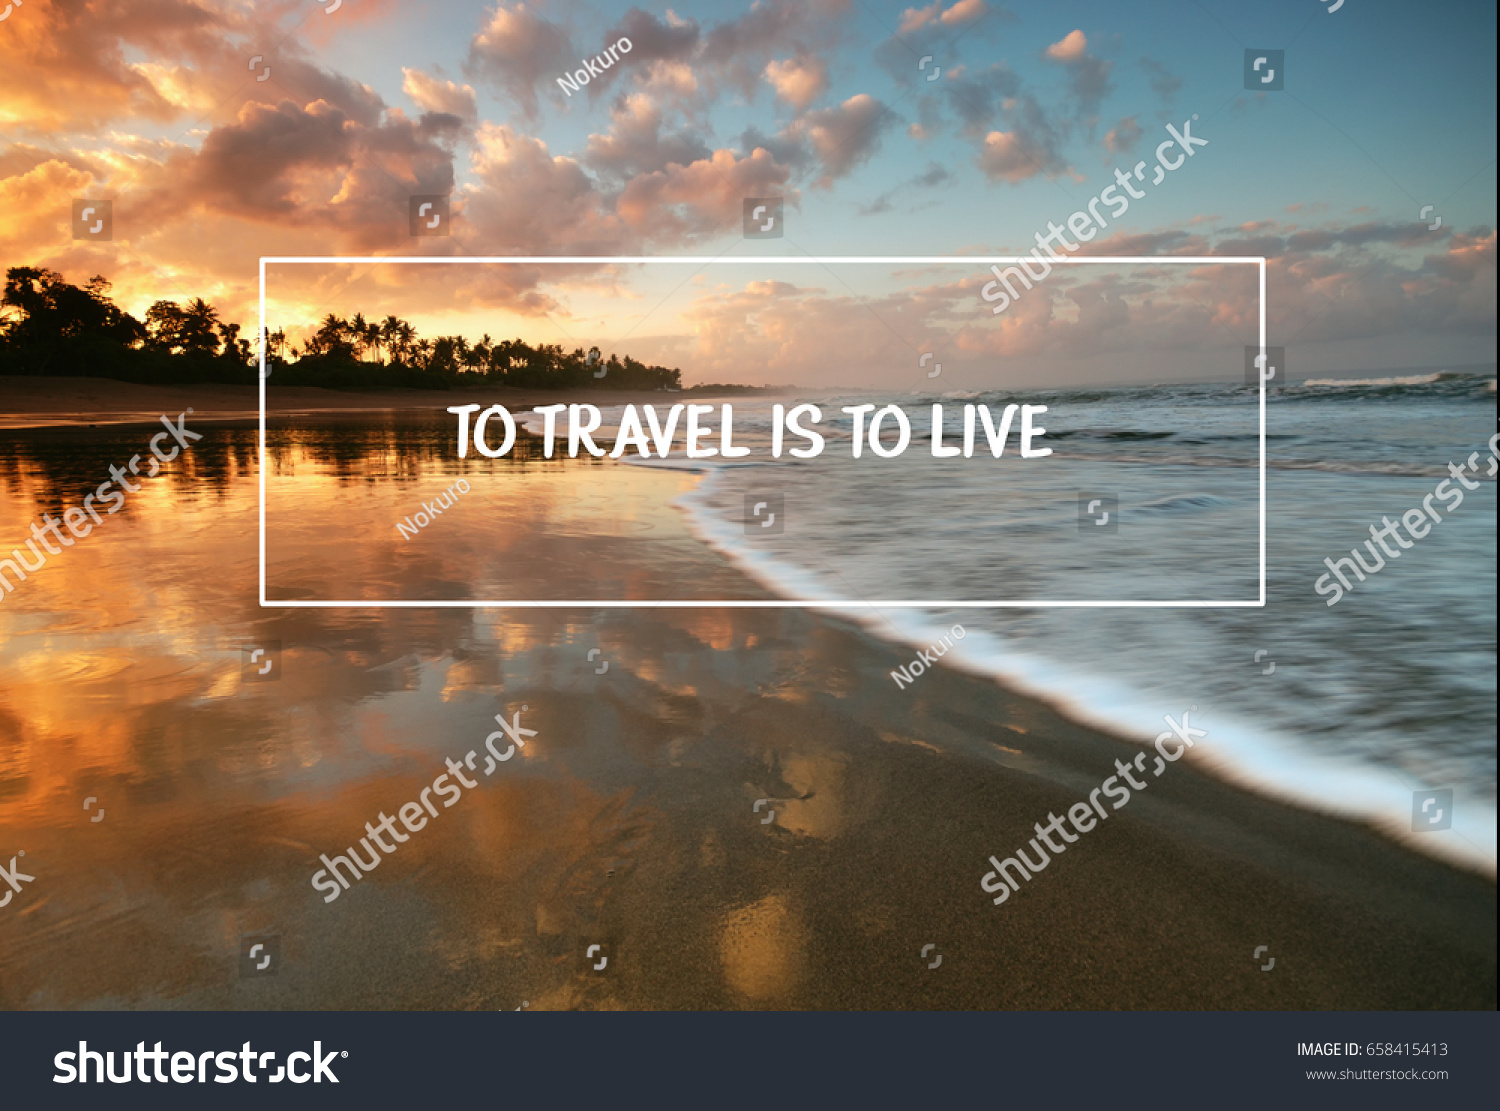 Quotes For Travel Travel Inspirational Quotes Travel Live Blurry Stock Photo